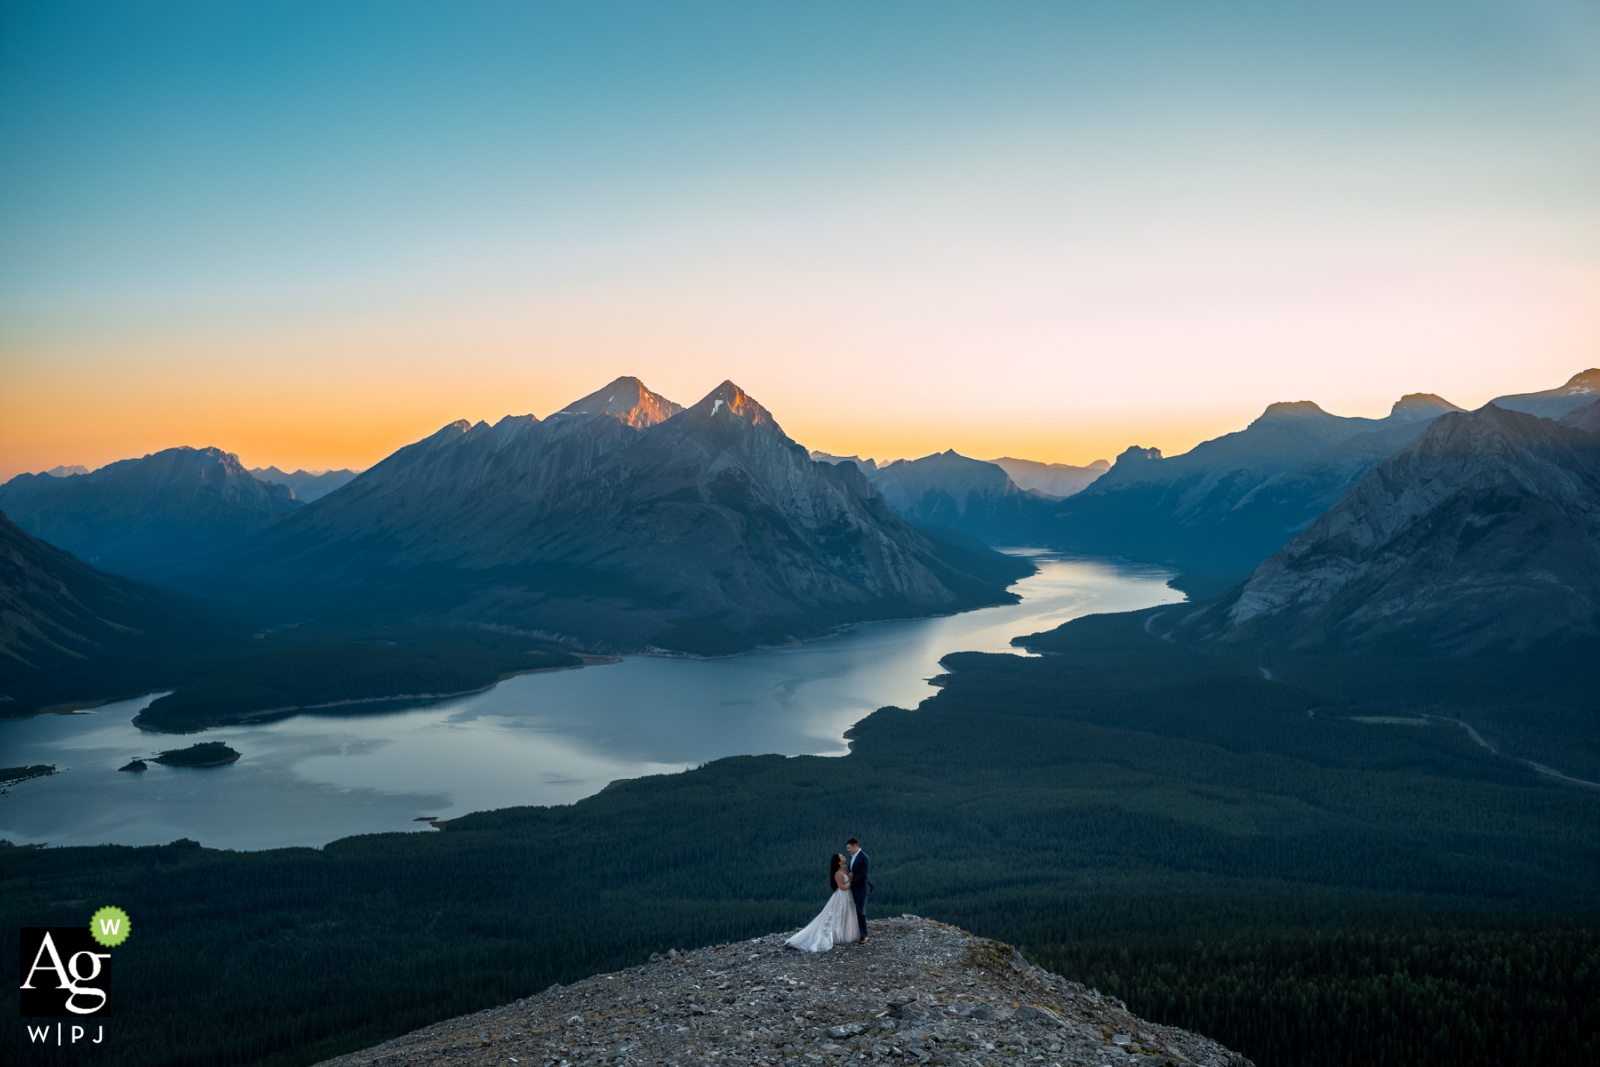 Tent Ridge, Kananaskis, AB, Canada creative wedding day portrait with the couple and some Admiration of the sunrise